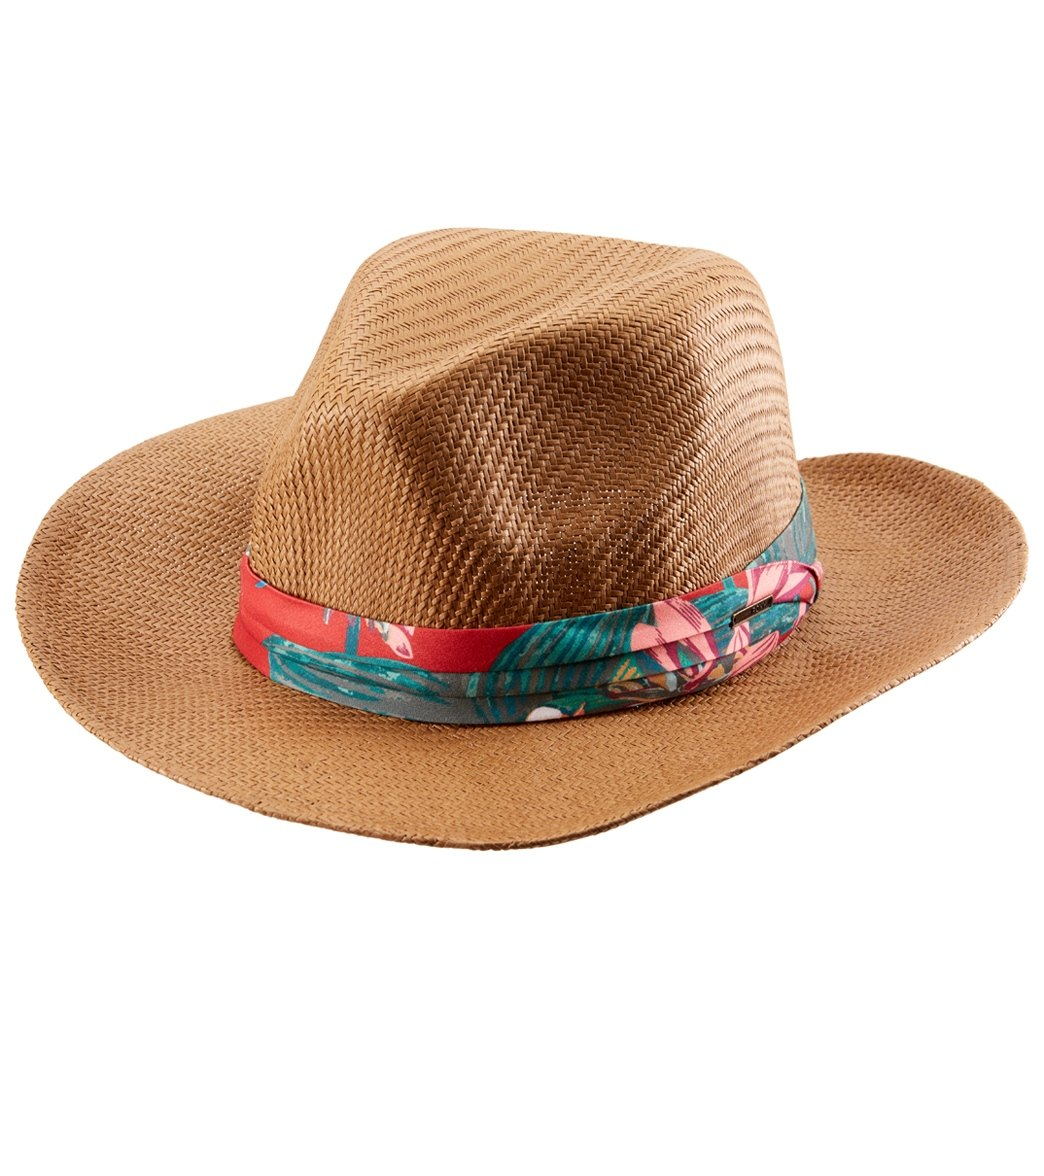 573d285ab4e Roxy Here We Go Panama Hat at SwimOutlet.com